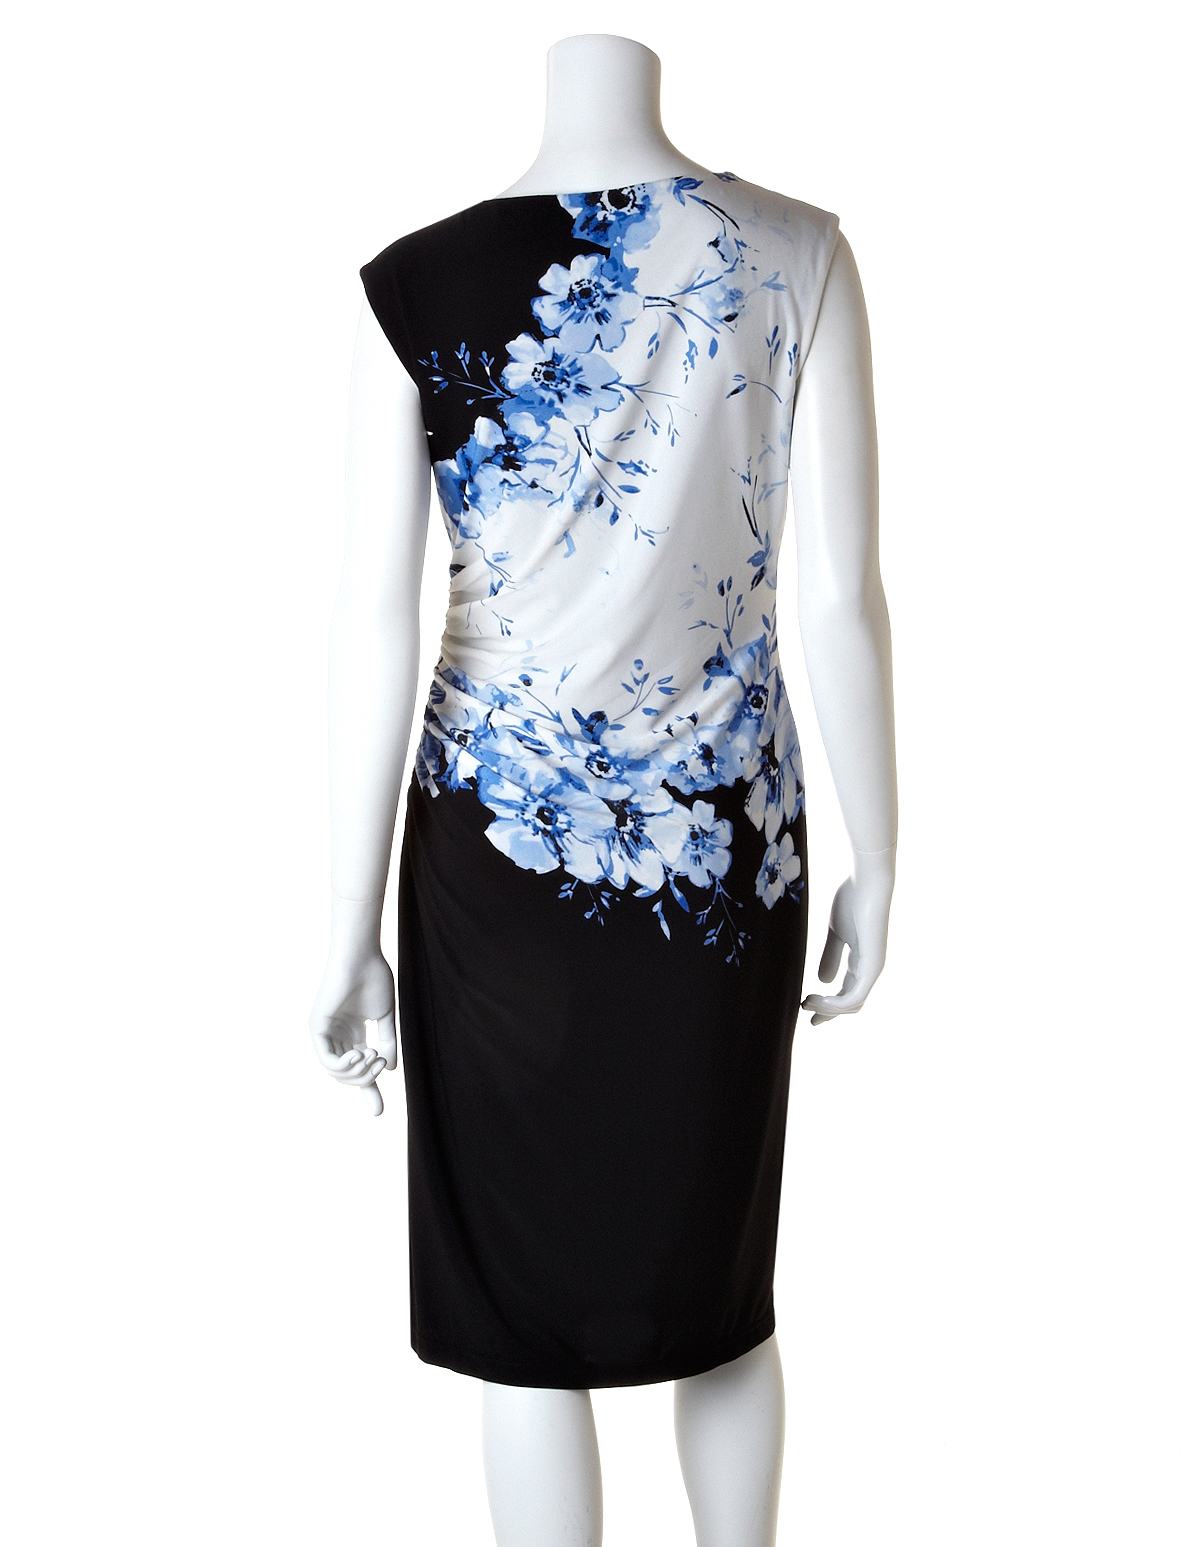 Free shipping on women's shift dresses at ragabjv.gq Shop for shift dresses in the latest colors and materials. Totally free shipping and returns.